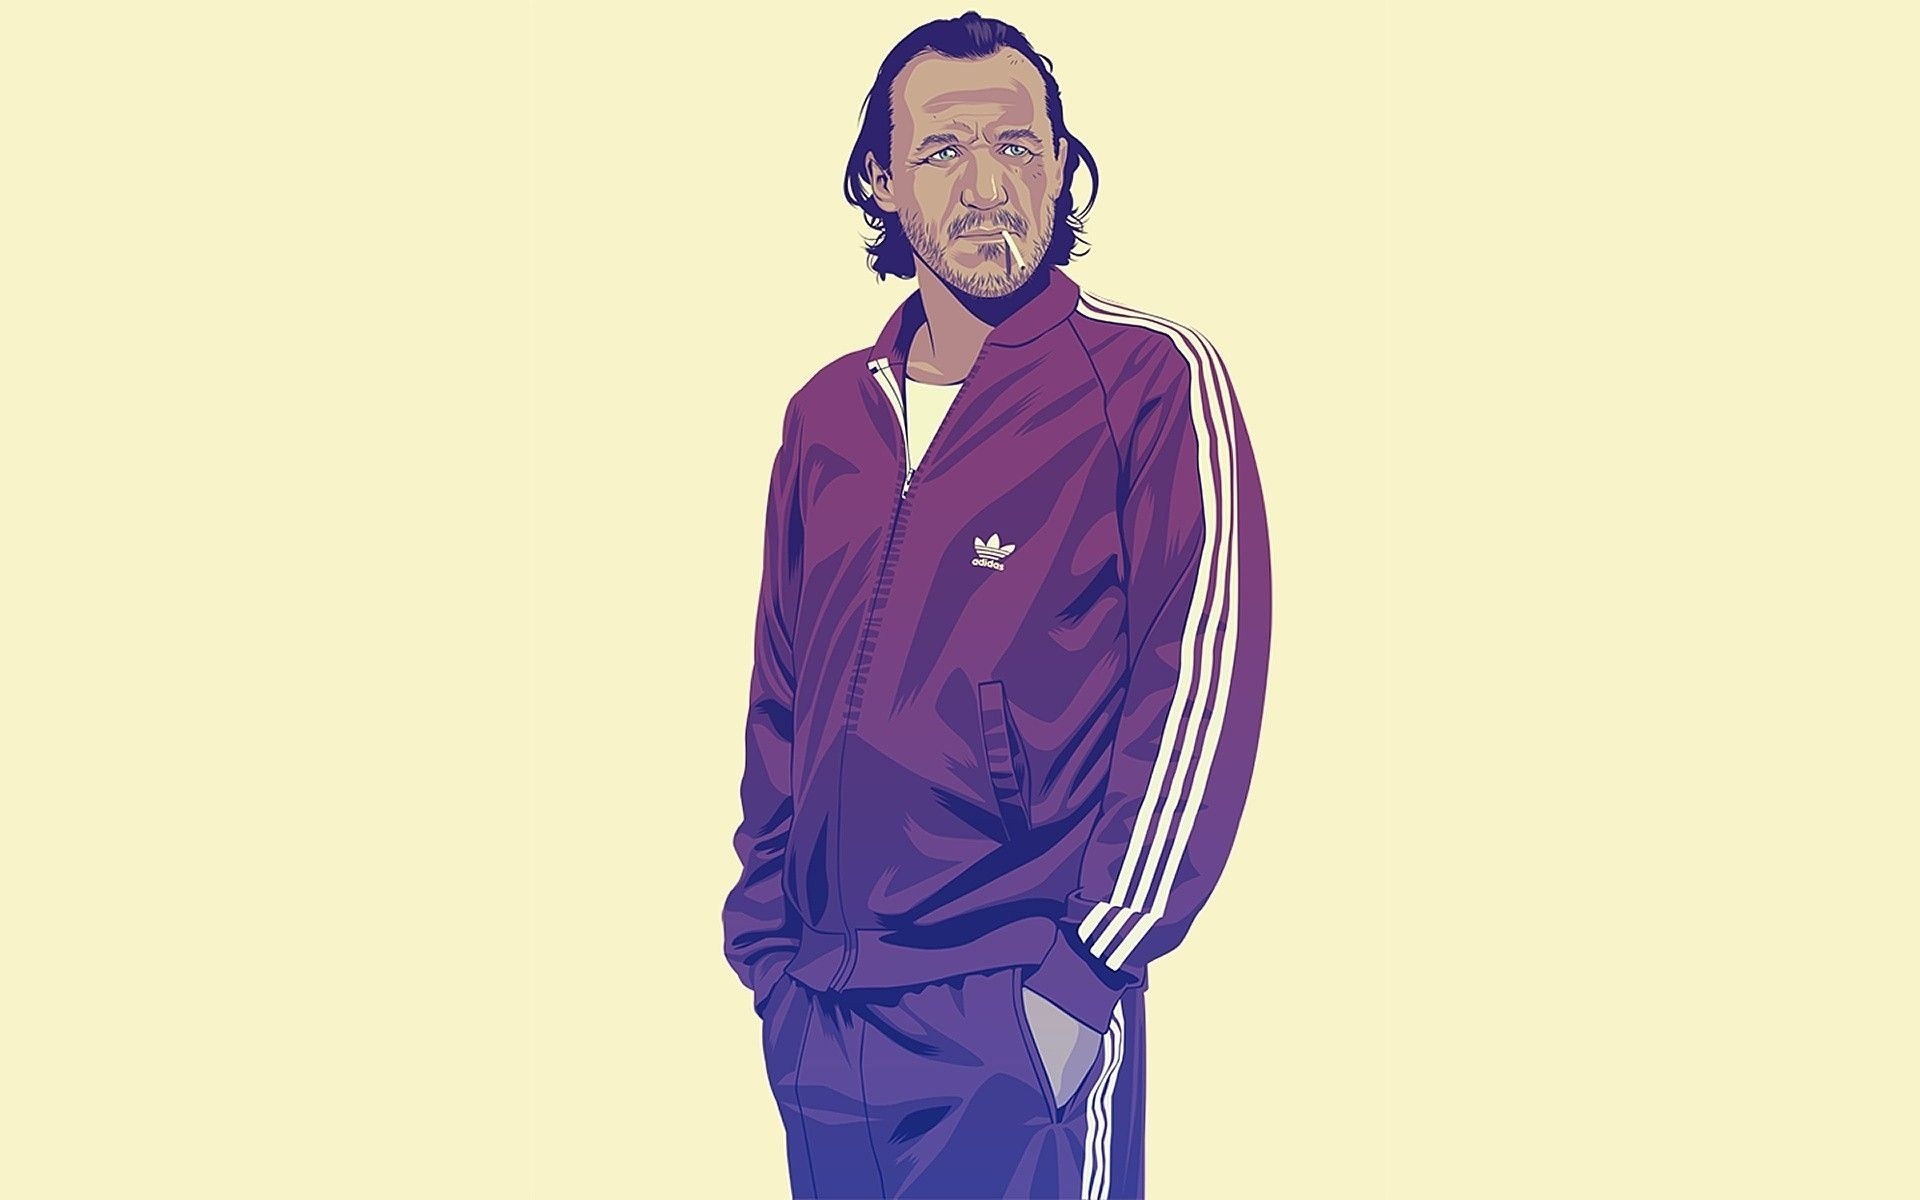 Game of Thrones Adidas tracksuit, illustration, vector